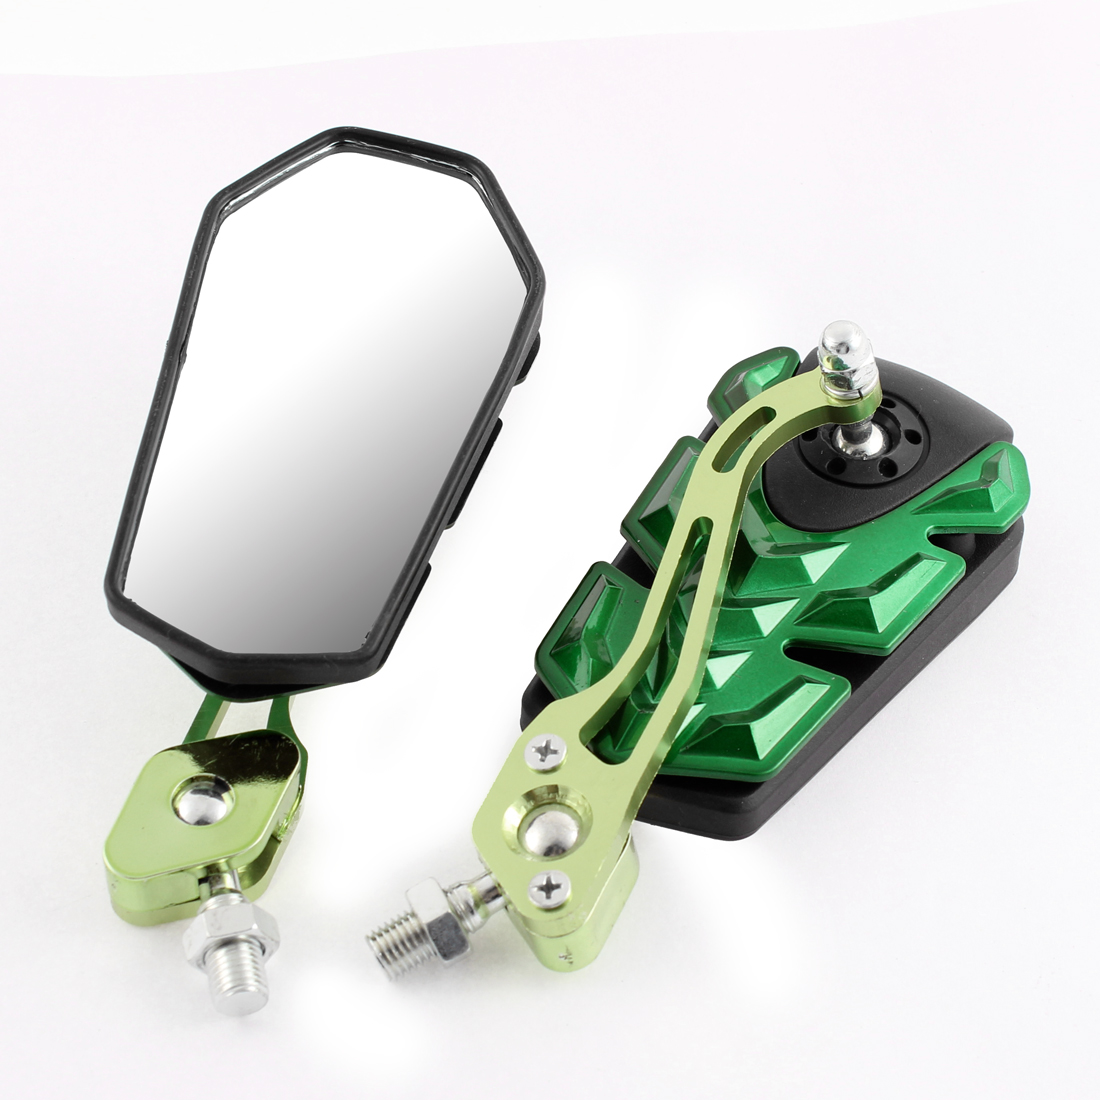 2 Pcs Green Adjustable Motorbike Side Rearview Blind Spot Mirrors